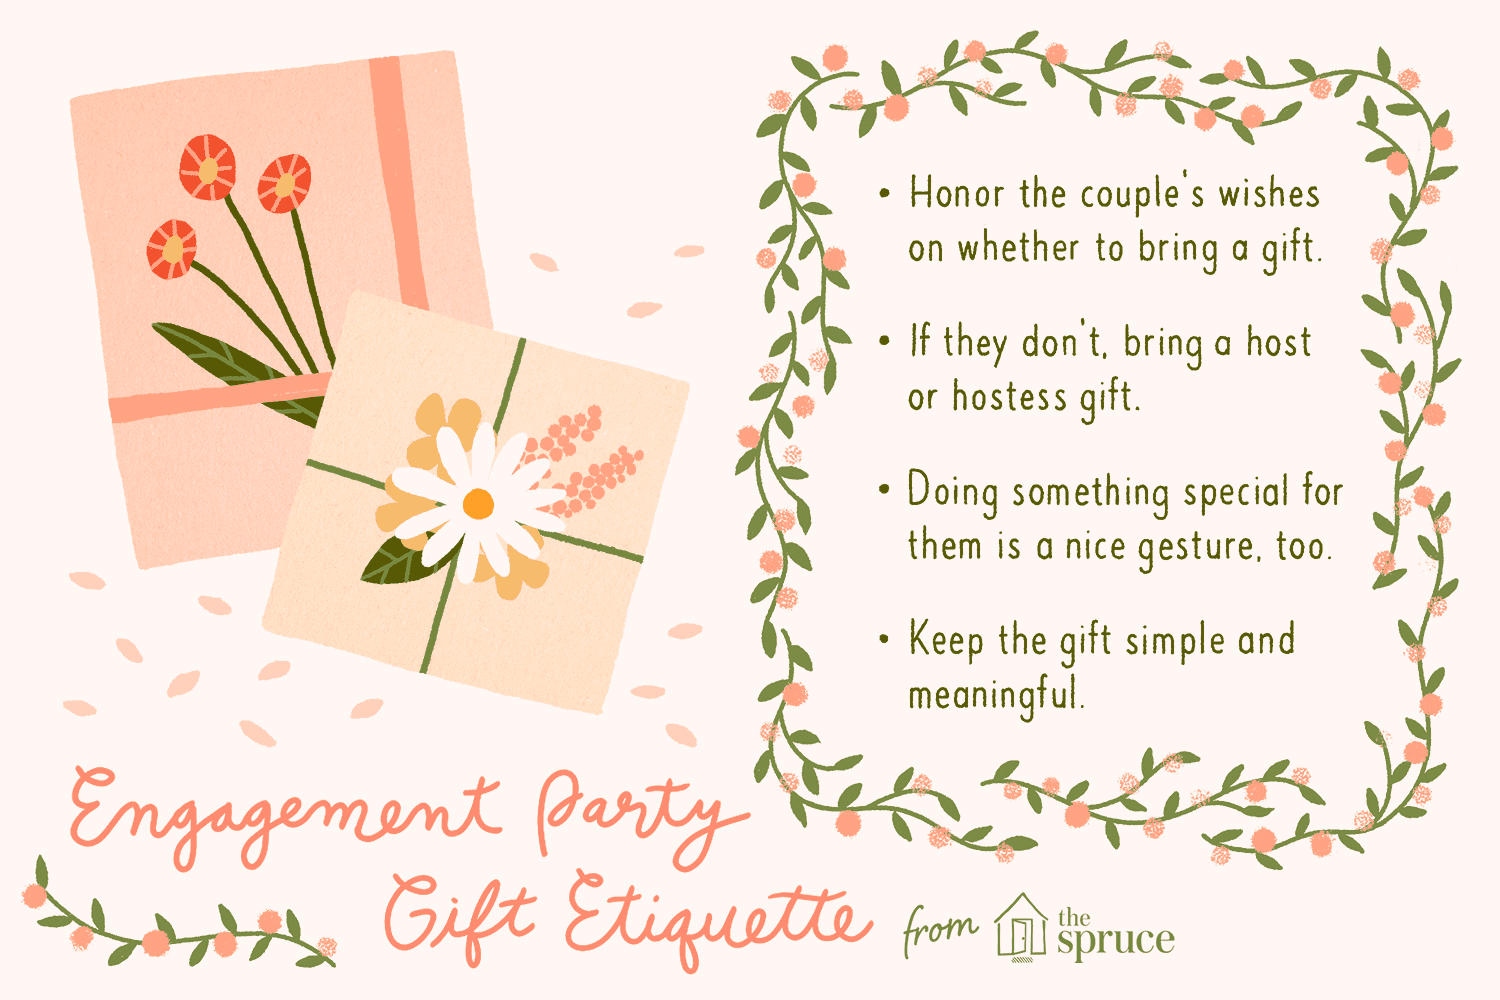 illustration of engagement party gift tips